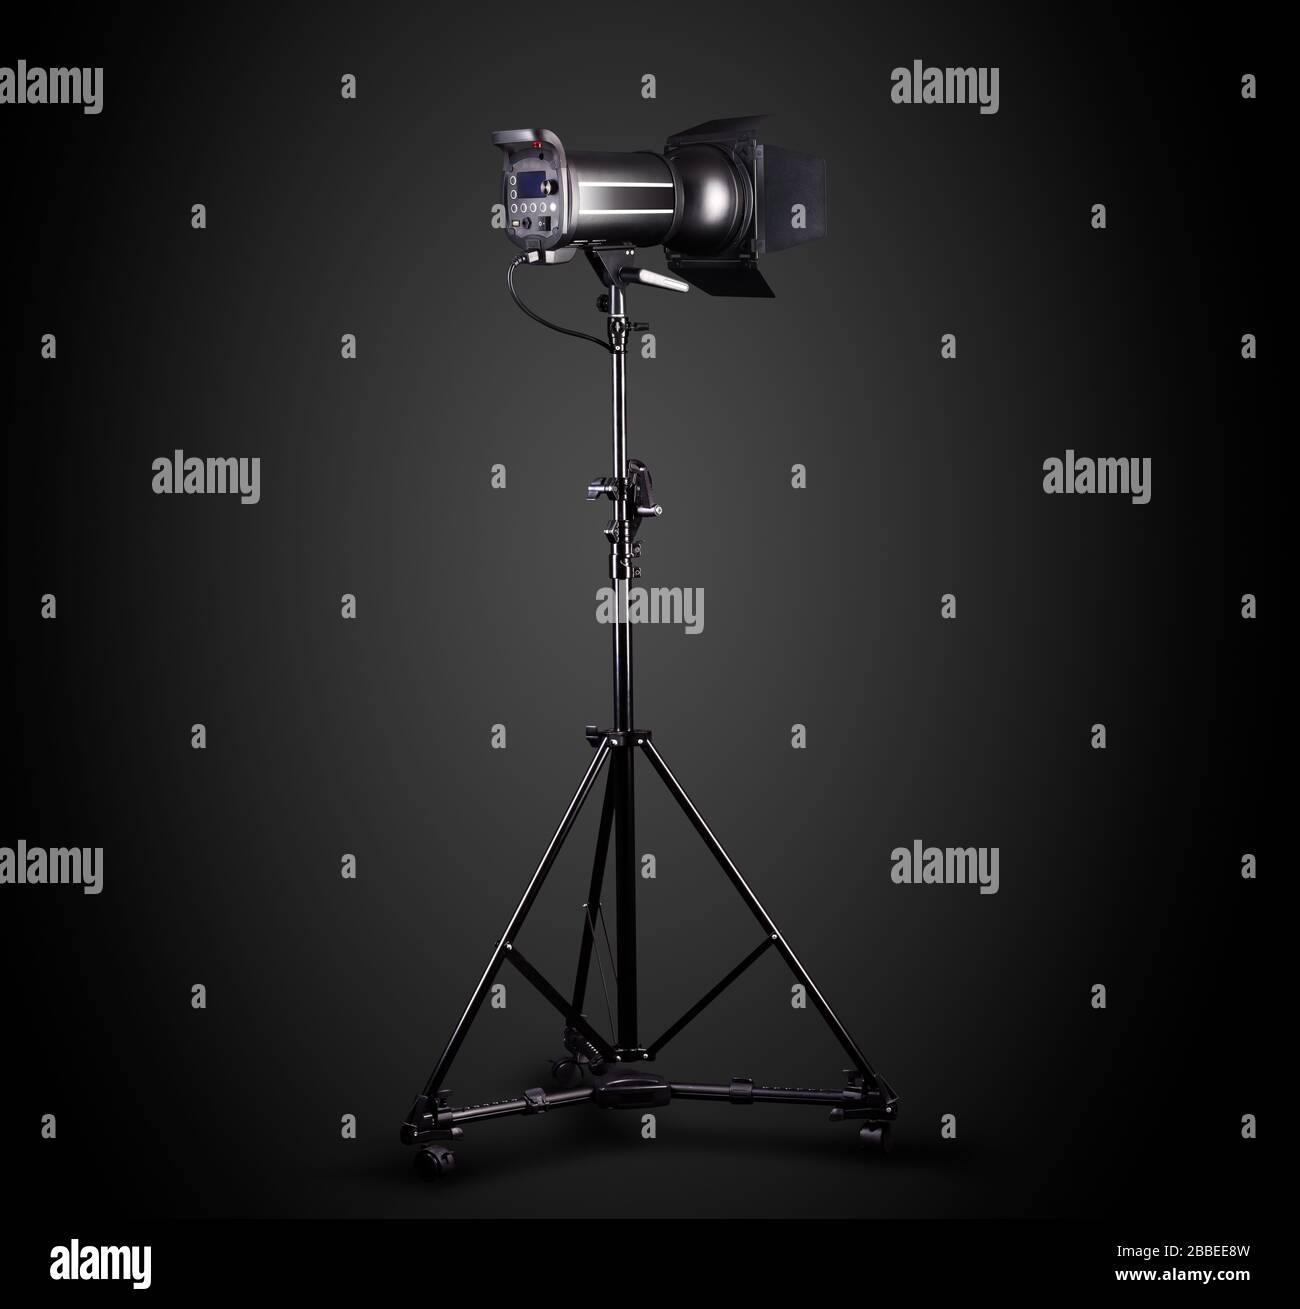 Photography Studio Flash On A Lighting Stand Isolated On Black Background With Lamp Proffetional Equipment Like Monobloc Or Monolight Stock Photo Alamy